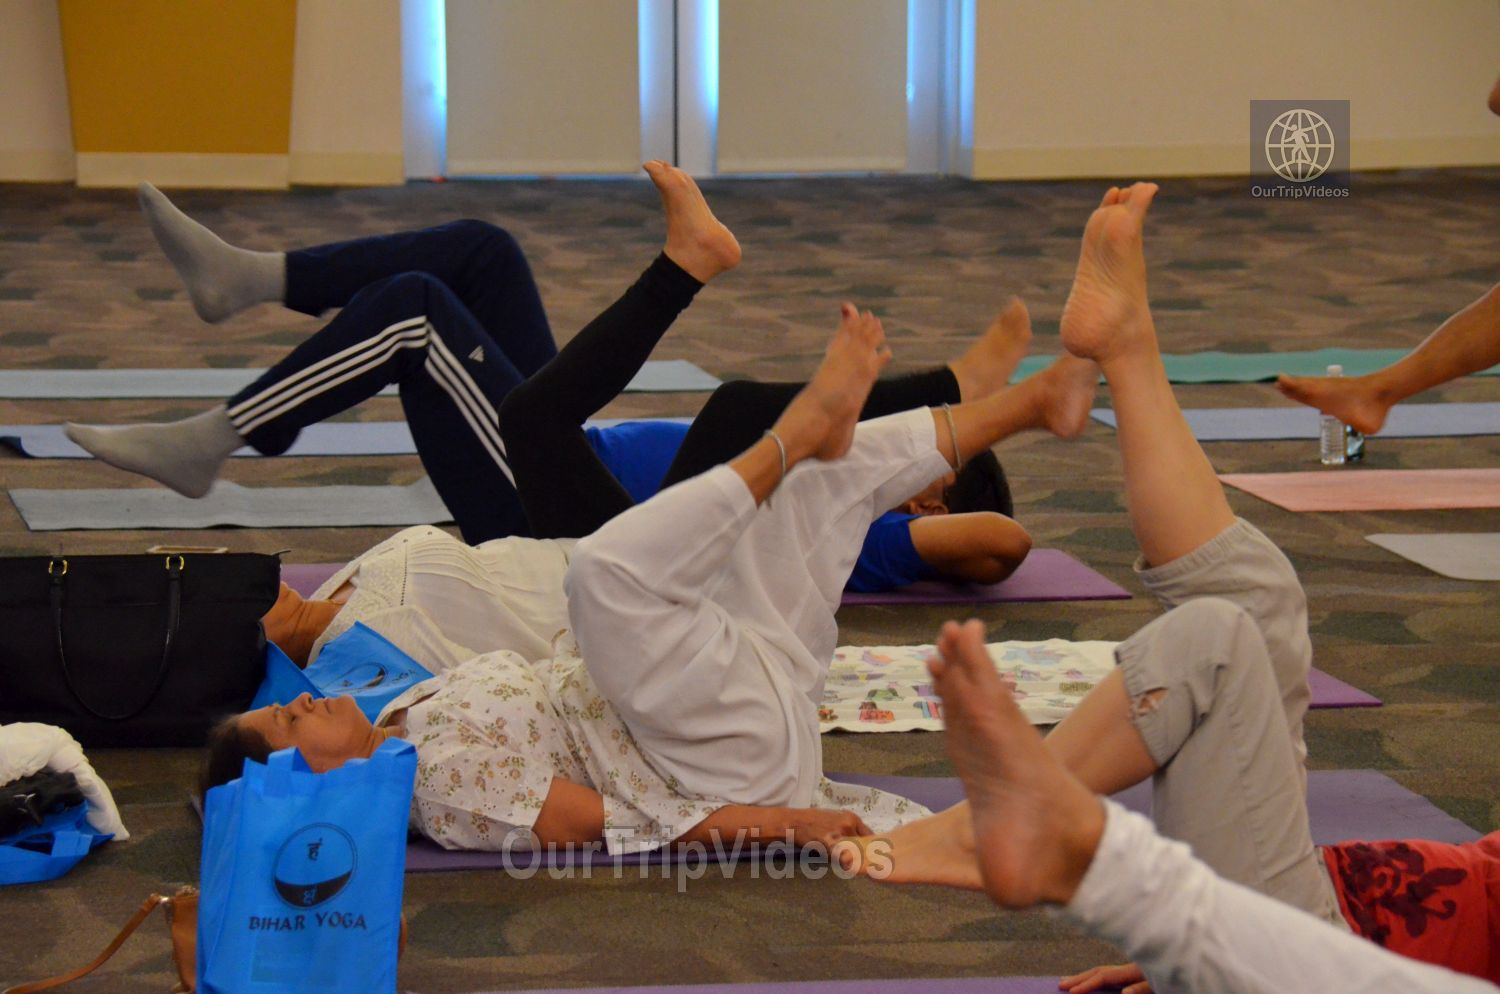 International Yoga Day at ICC, Milpitas, CA, USA - Picture 40 of 50